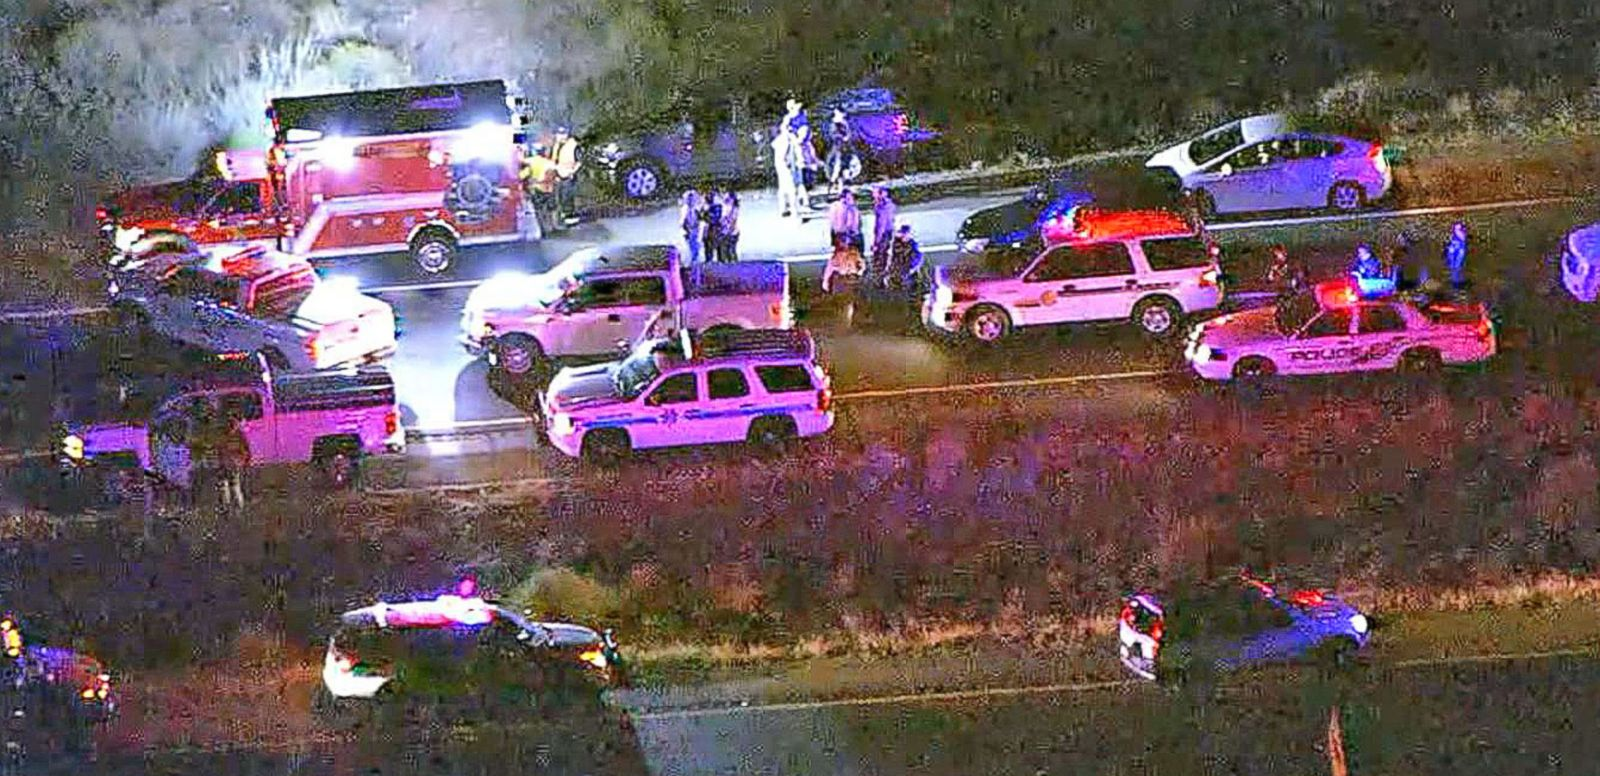 VIDEO: Highway Shooter Opened Fire on Random Cars